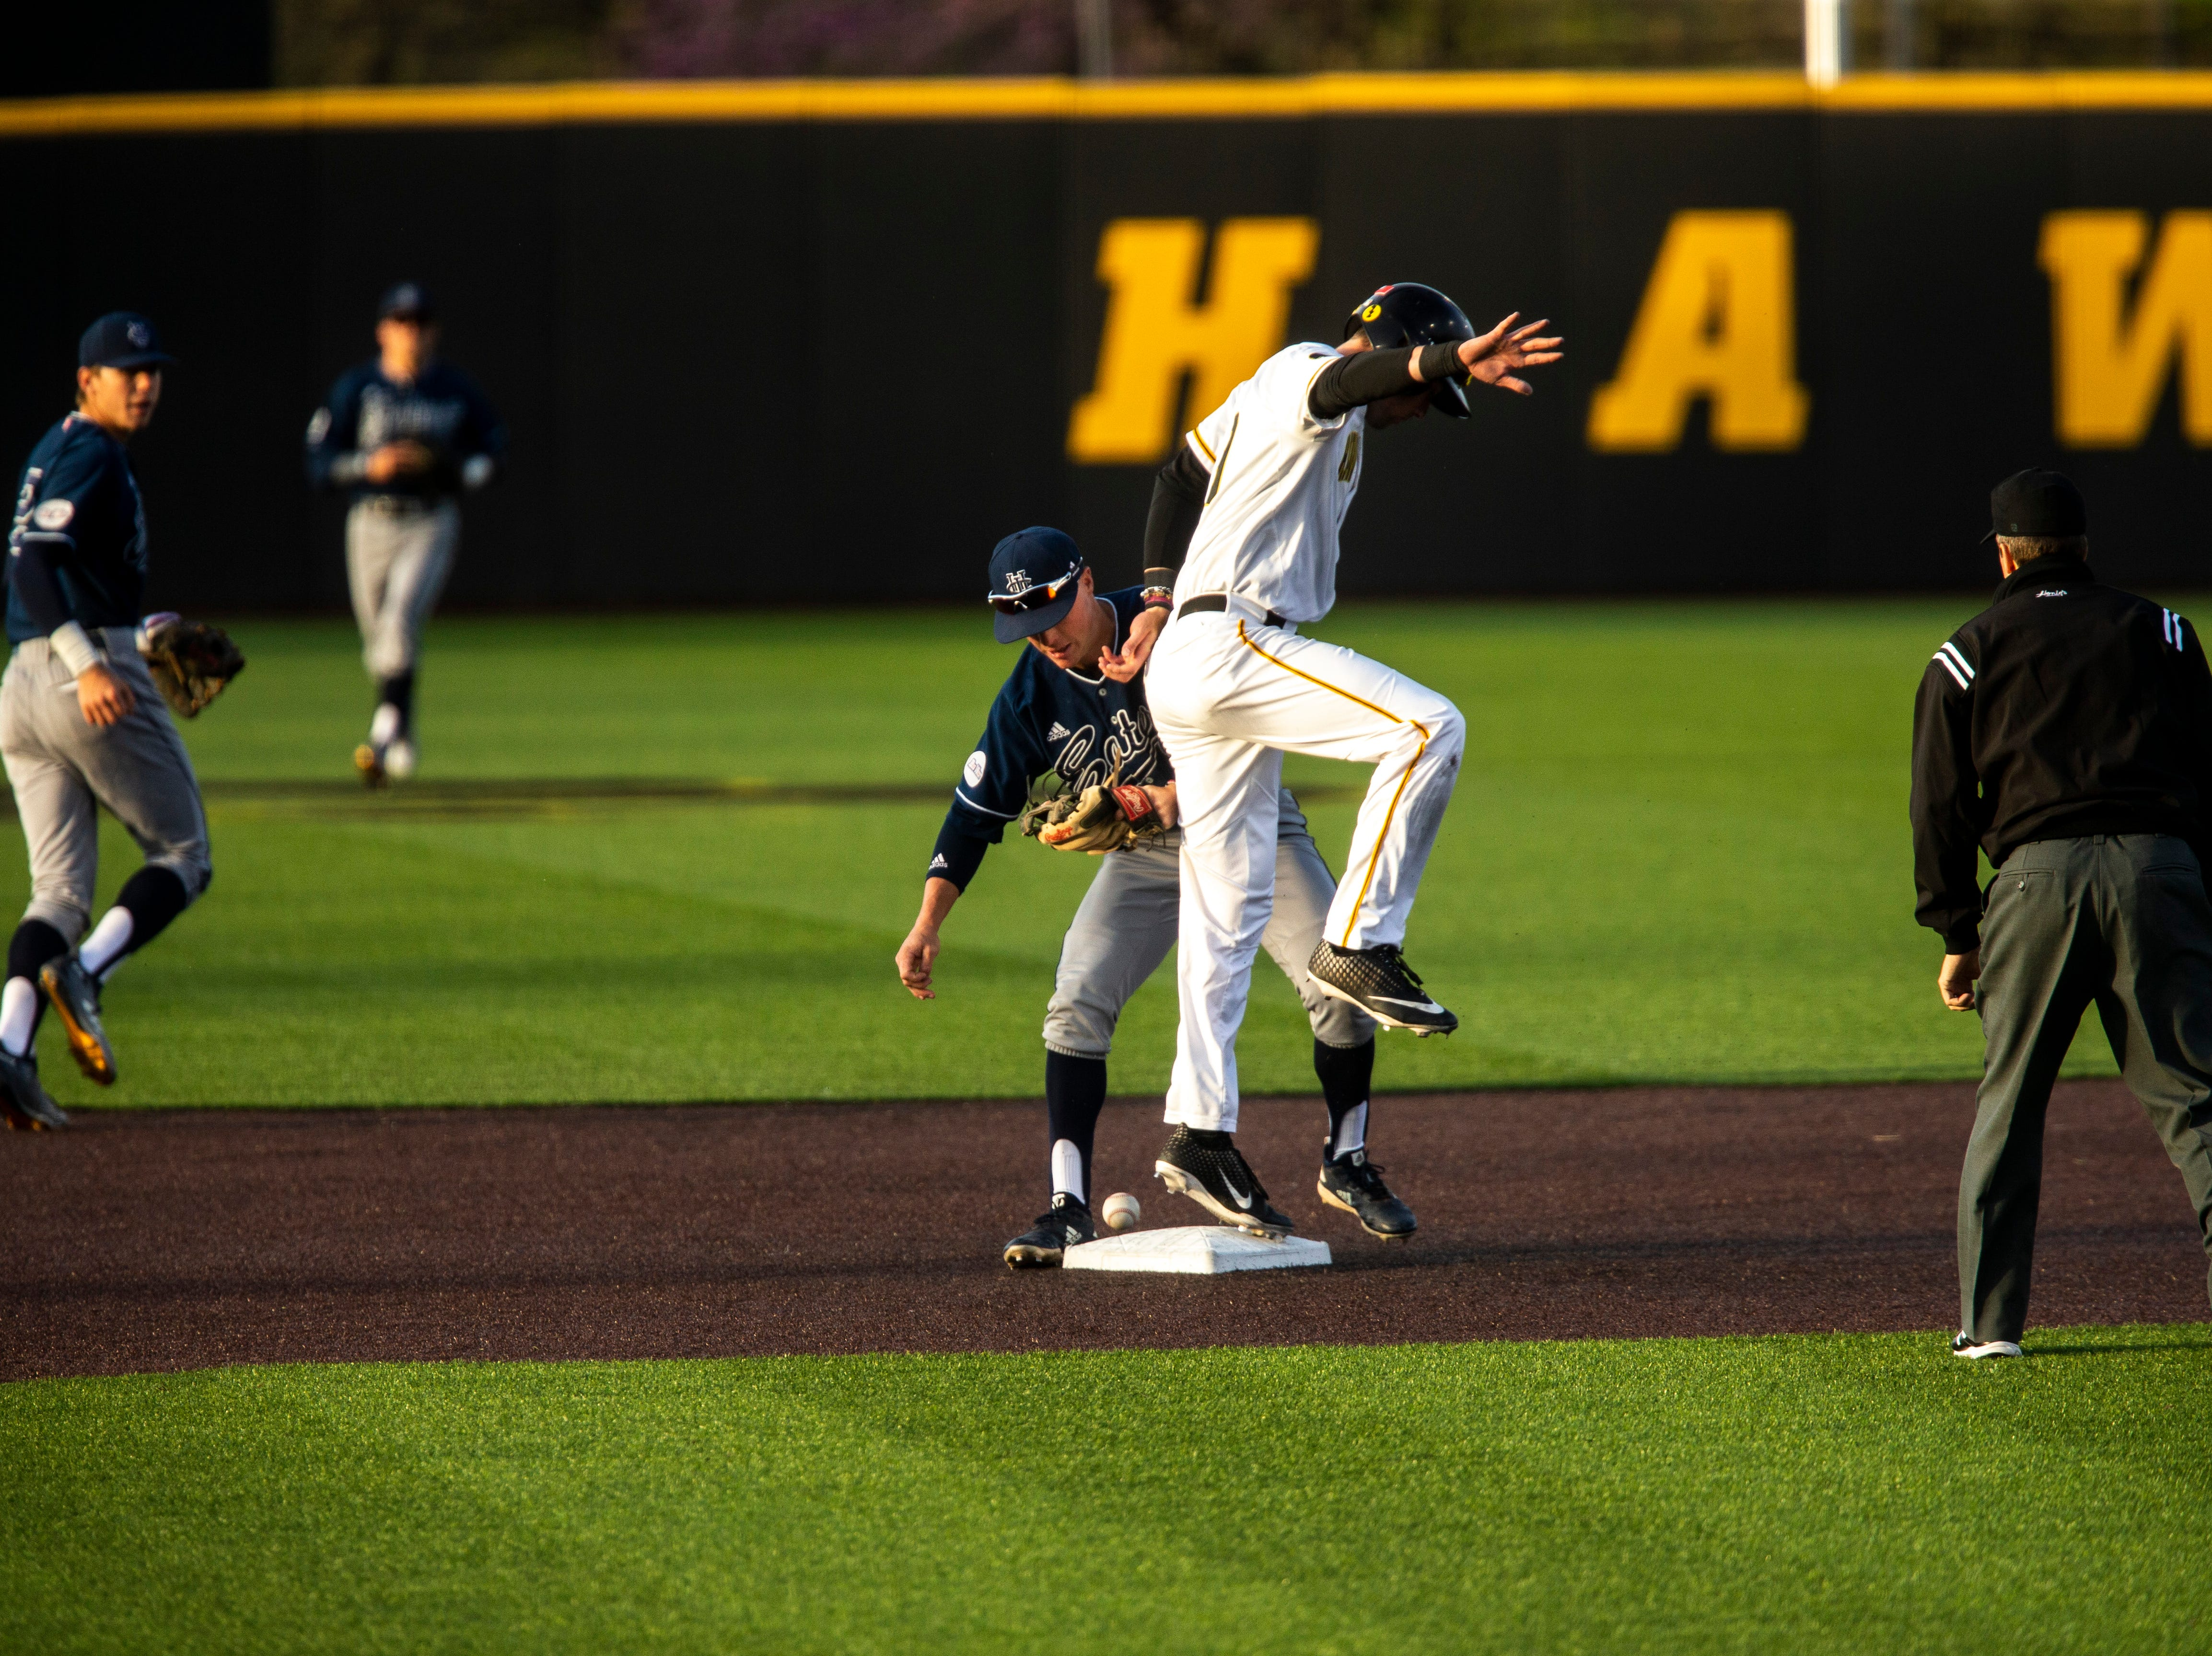 Iowa outfielder Ben Norman, right, attempts to keep his balance on second after sliding in safe following a dropped catch from University of California Irvine's Sam Ireland (5) during NCAA non conference baseball game, Friday, May 3, 2019, at Duane Banks Field in Iowa City, Iowa.